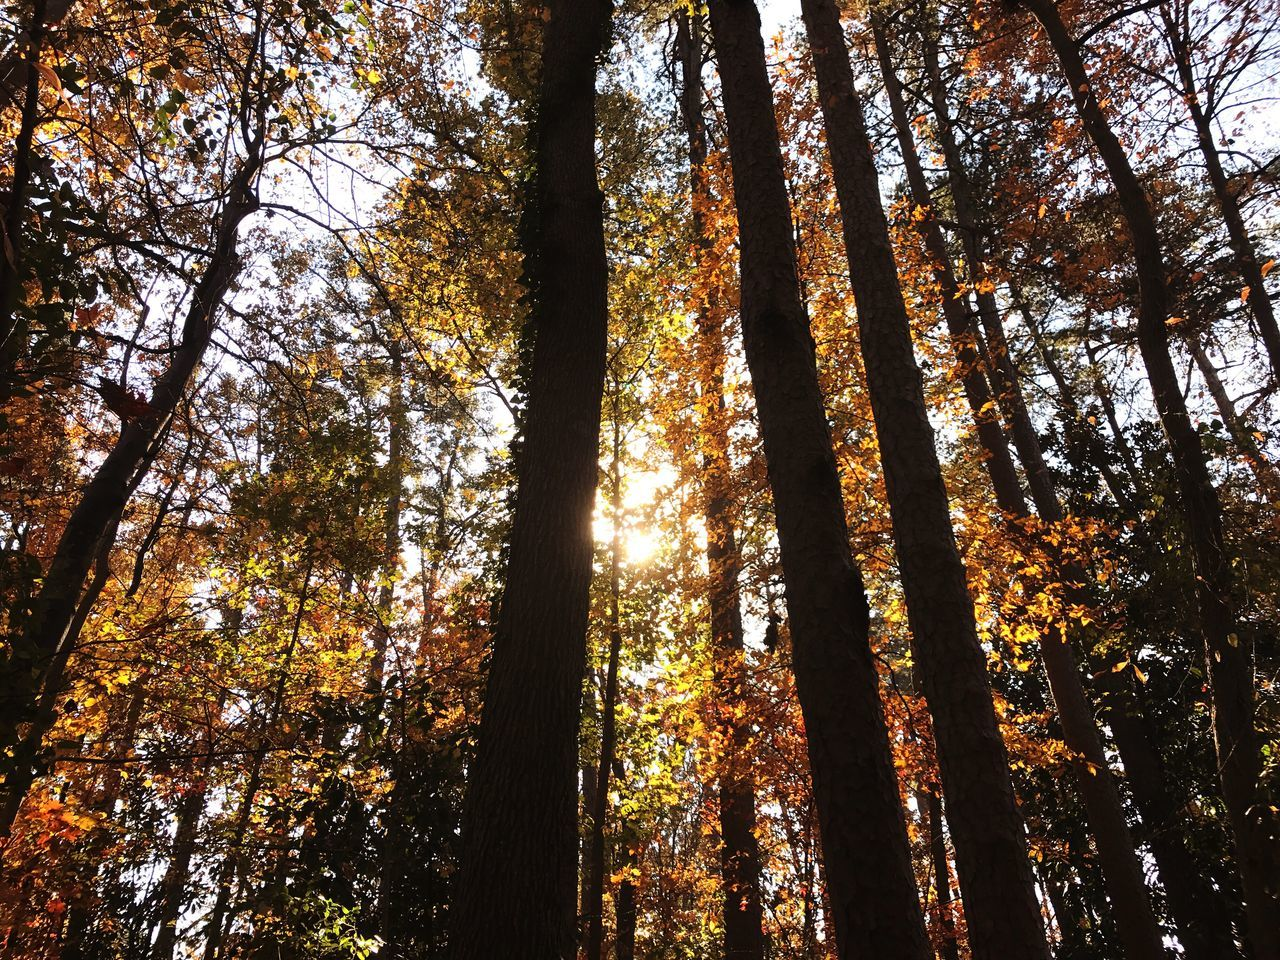 Sun through the autumn leaves. Tree Nature Low Angle View Beauty In Nature Forest Growth No People Scenics Tranquility Tree Trunk Outdoors Branch Day Sky Autumn Colors Colorful